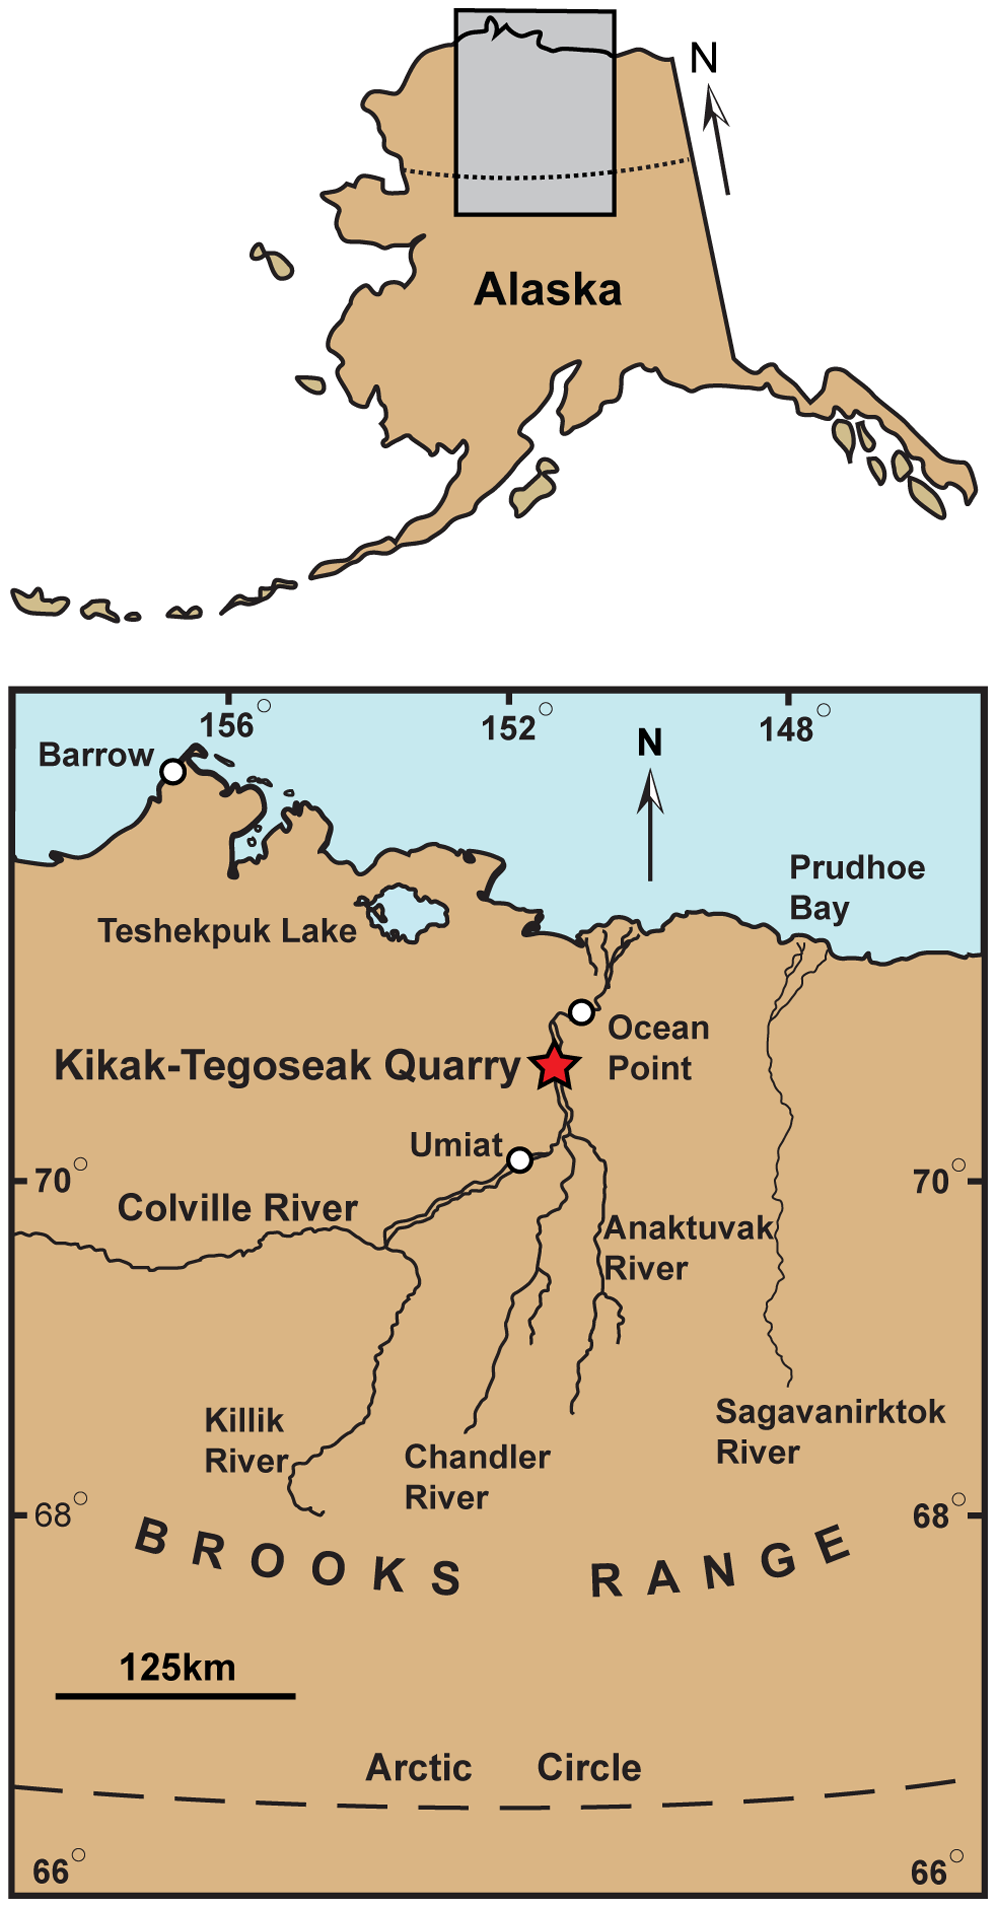 Map showing approximate location of the Kikak-Tegoseak Quarry. Gray rectangle indicates area seen in close-up view below. White circles indicate cities, towns, or settlements. Red star shows location of the Kikak-Tegoseak Quarry. (Courtesy PLoS)